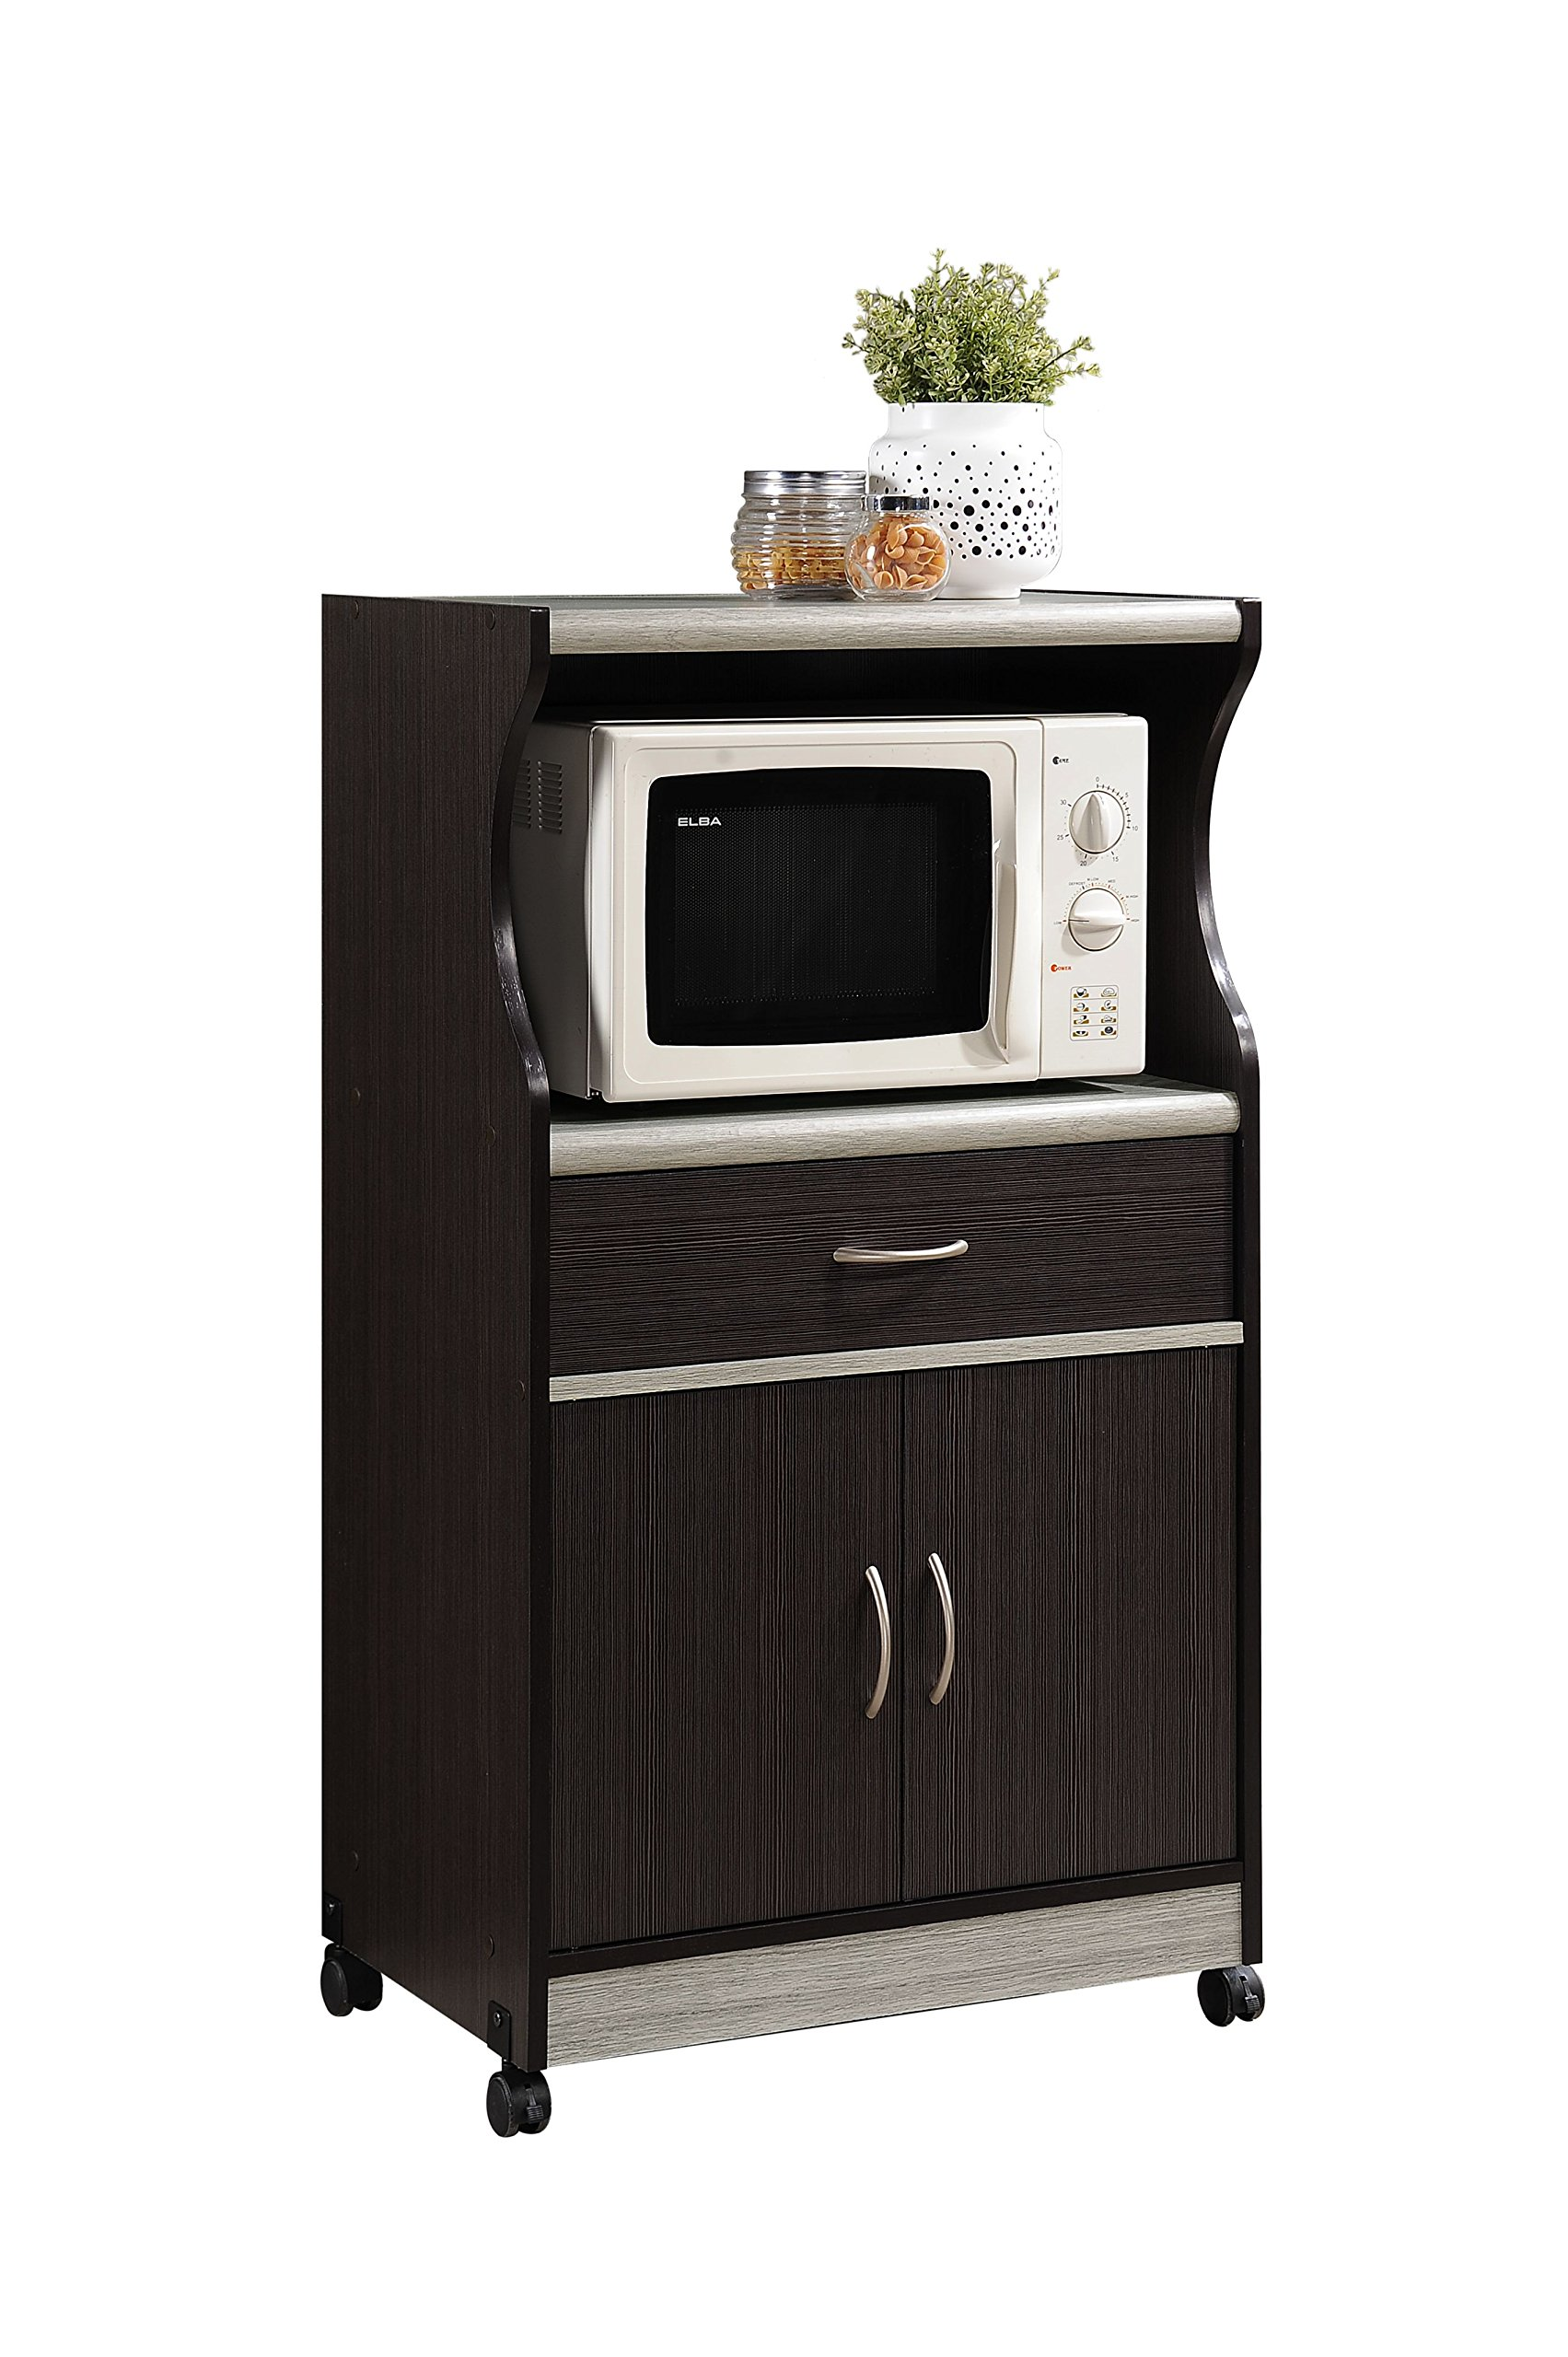 Get Quotations Hodedah Microwave Cart With One Drawer Two Doors And Shelf For Storage Chocolate